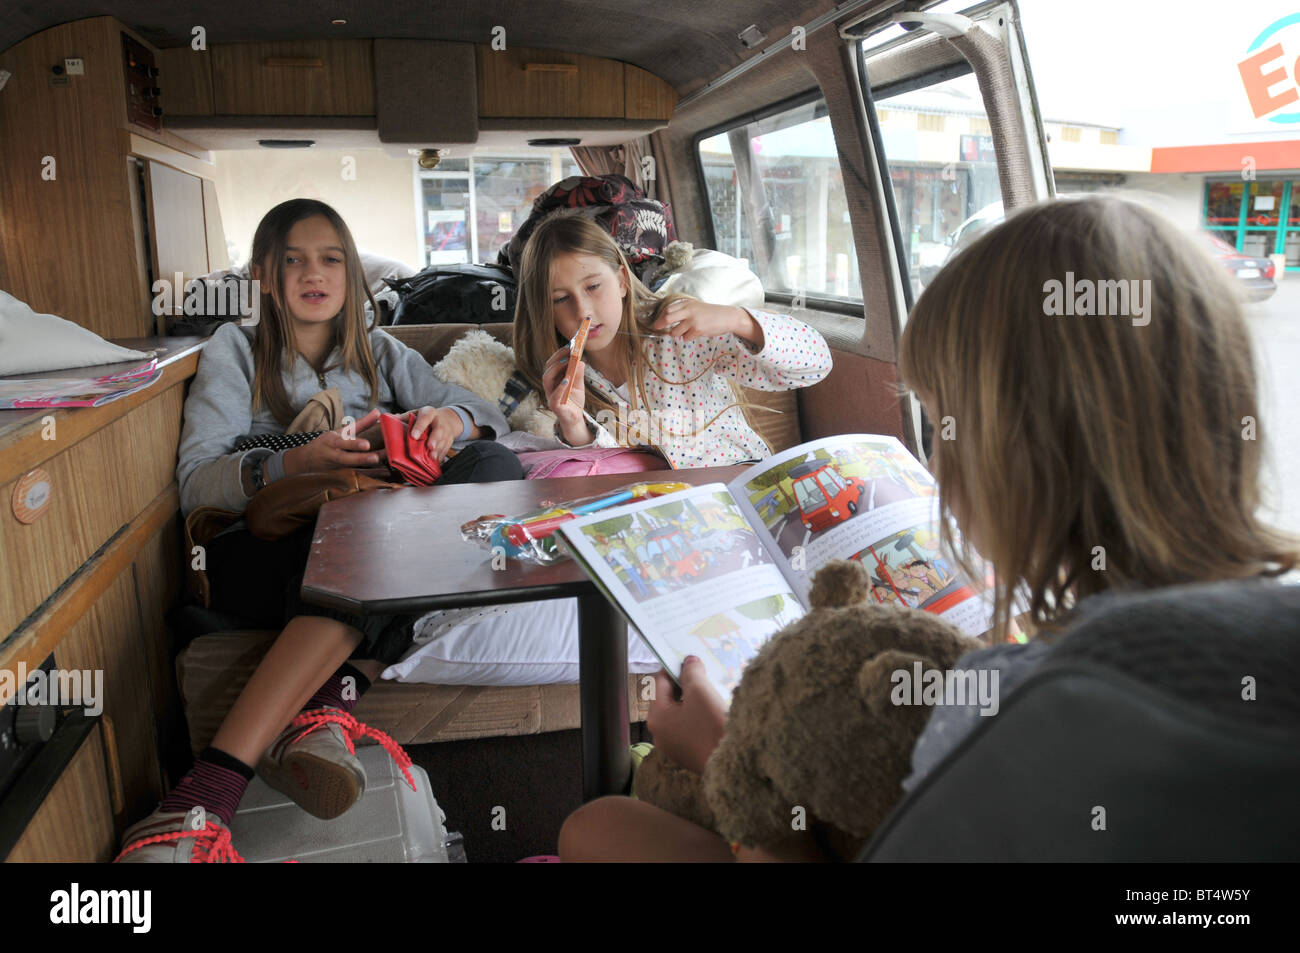 3 sisters in a VW campervan on holiday in France - Stock Image